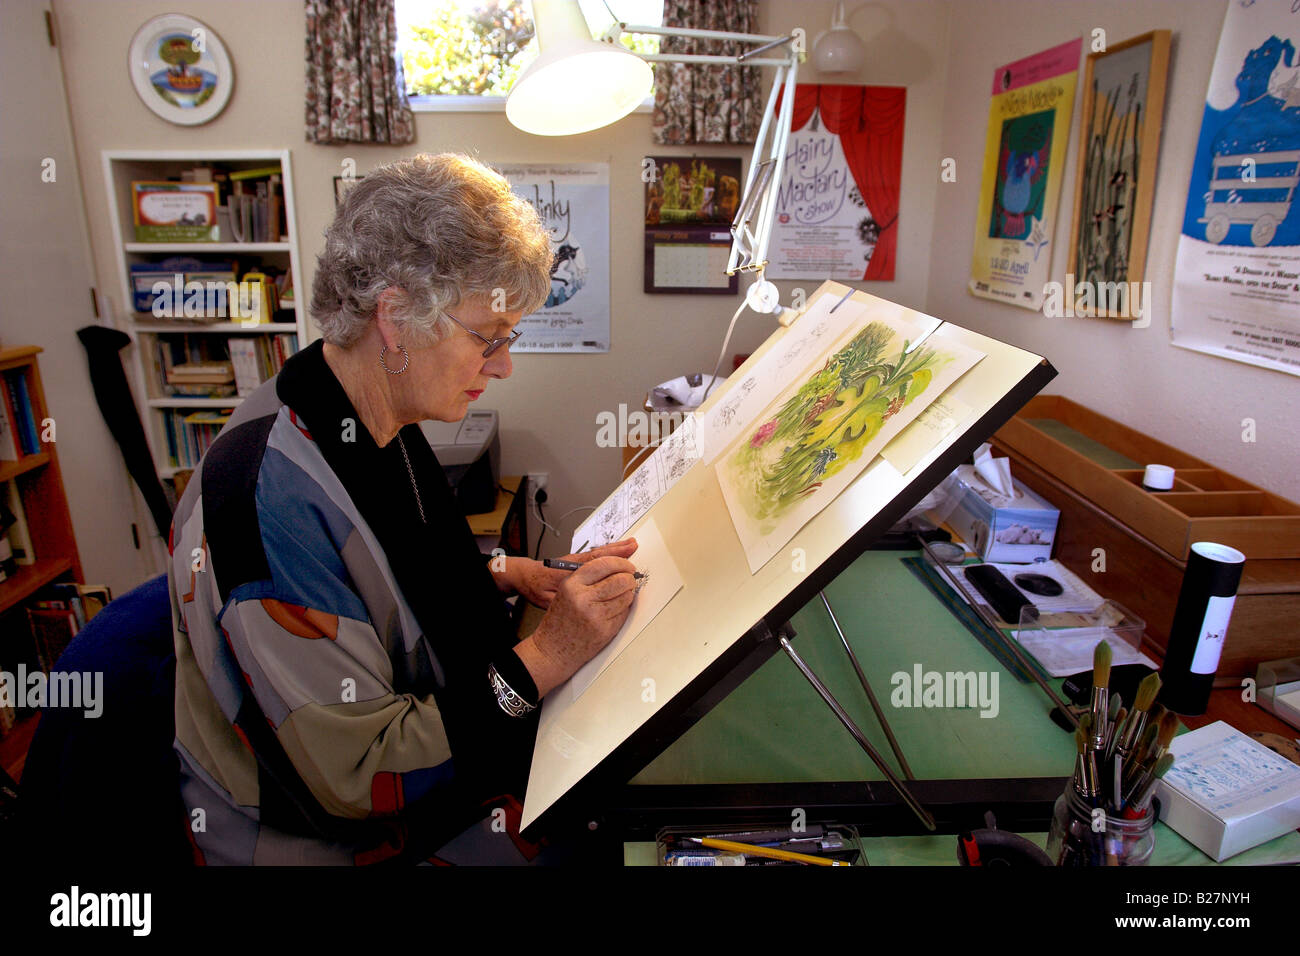 Childrens Author And Illustrator Lynley Dodd At Work In